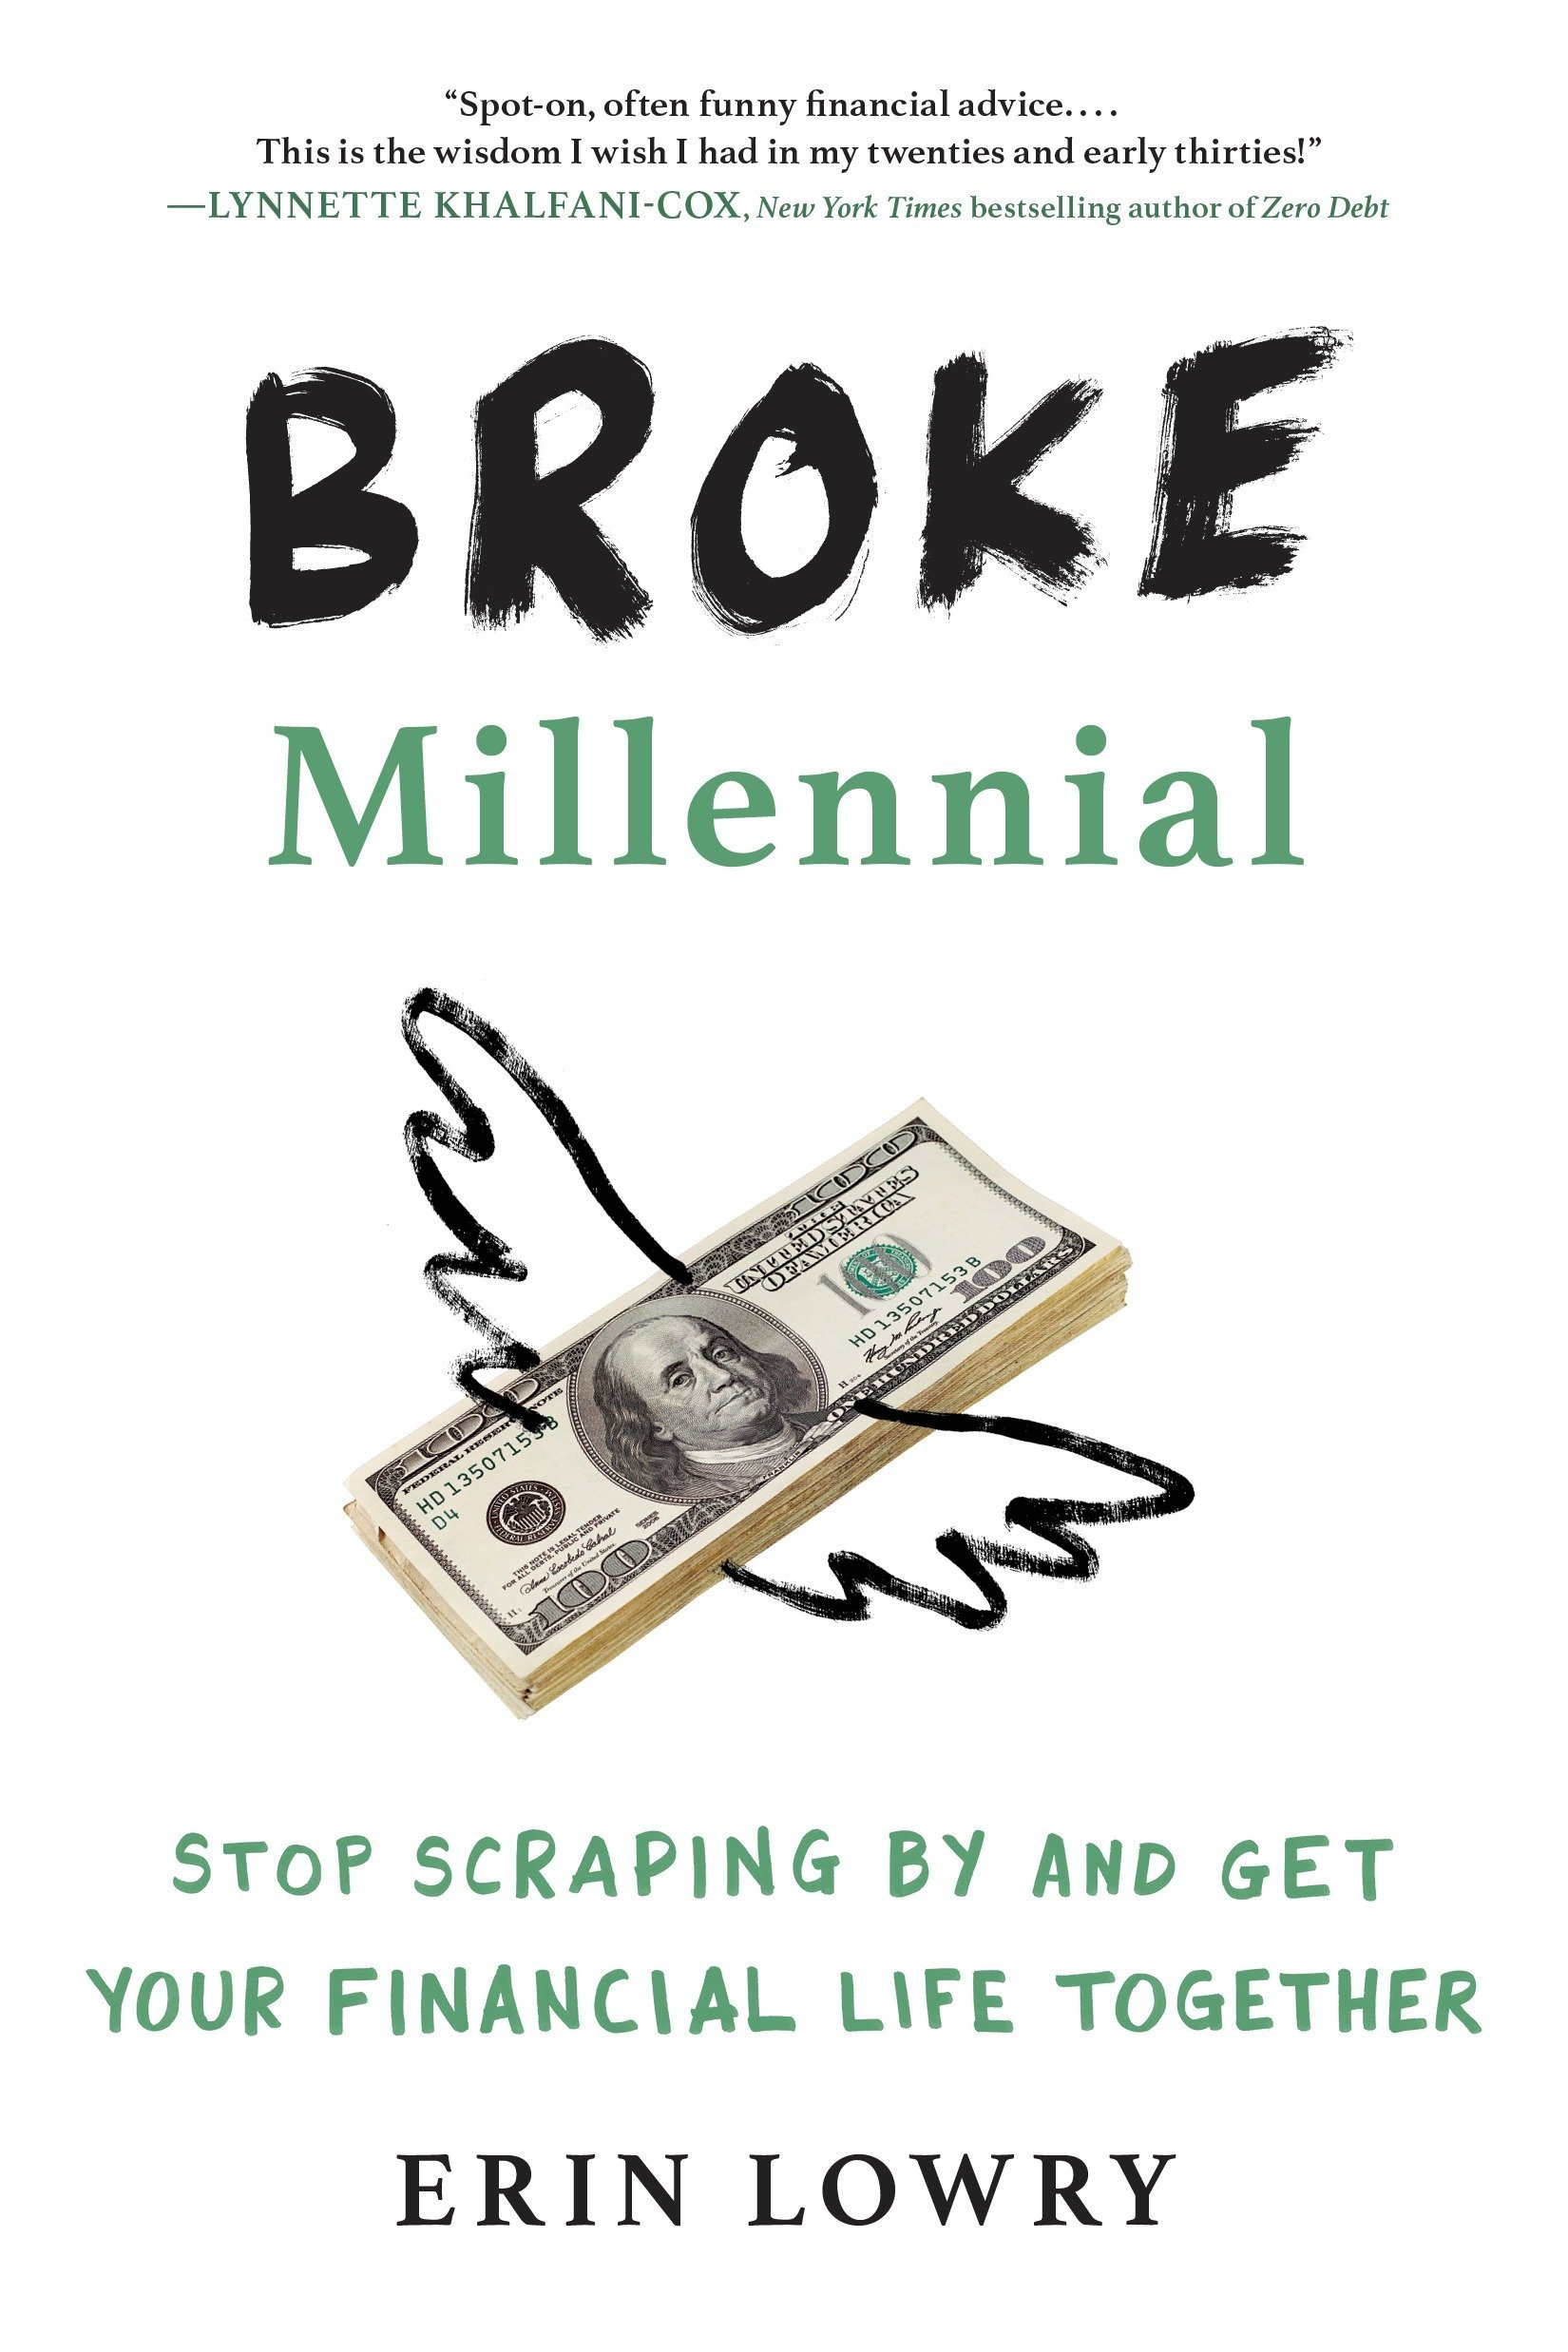 Erin Lowry - Broke Millennial - Stop Scraping By and Get Your Financial Life Together